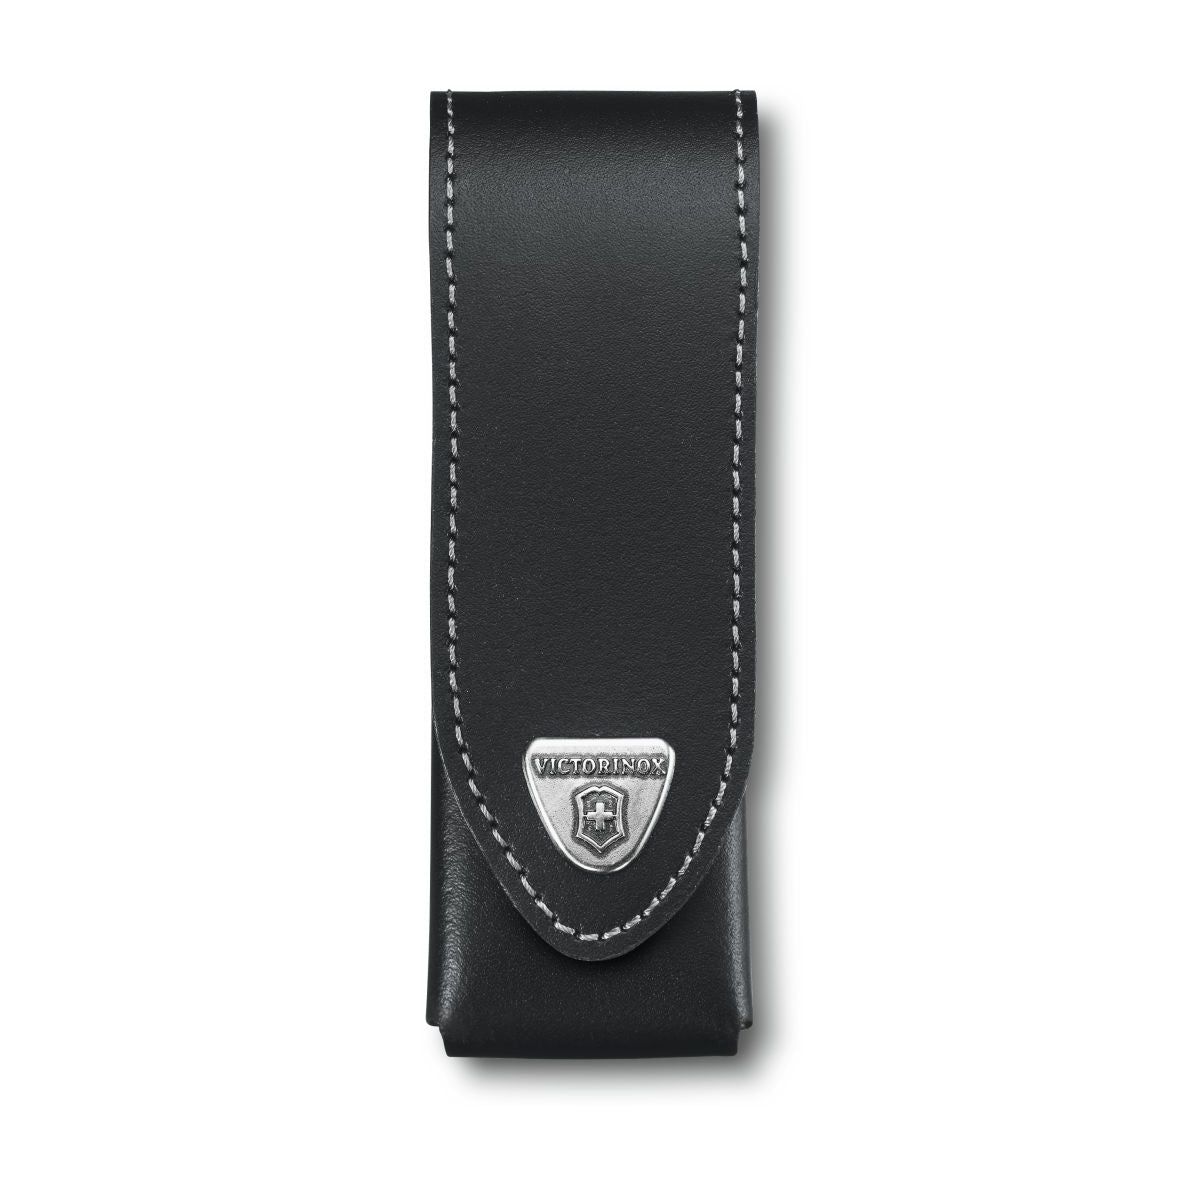 Victorinox Belt Pouch Blk Leather To 4 Layers